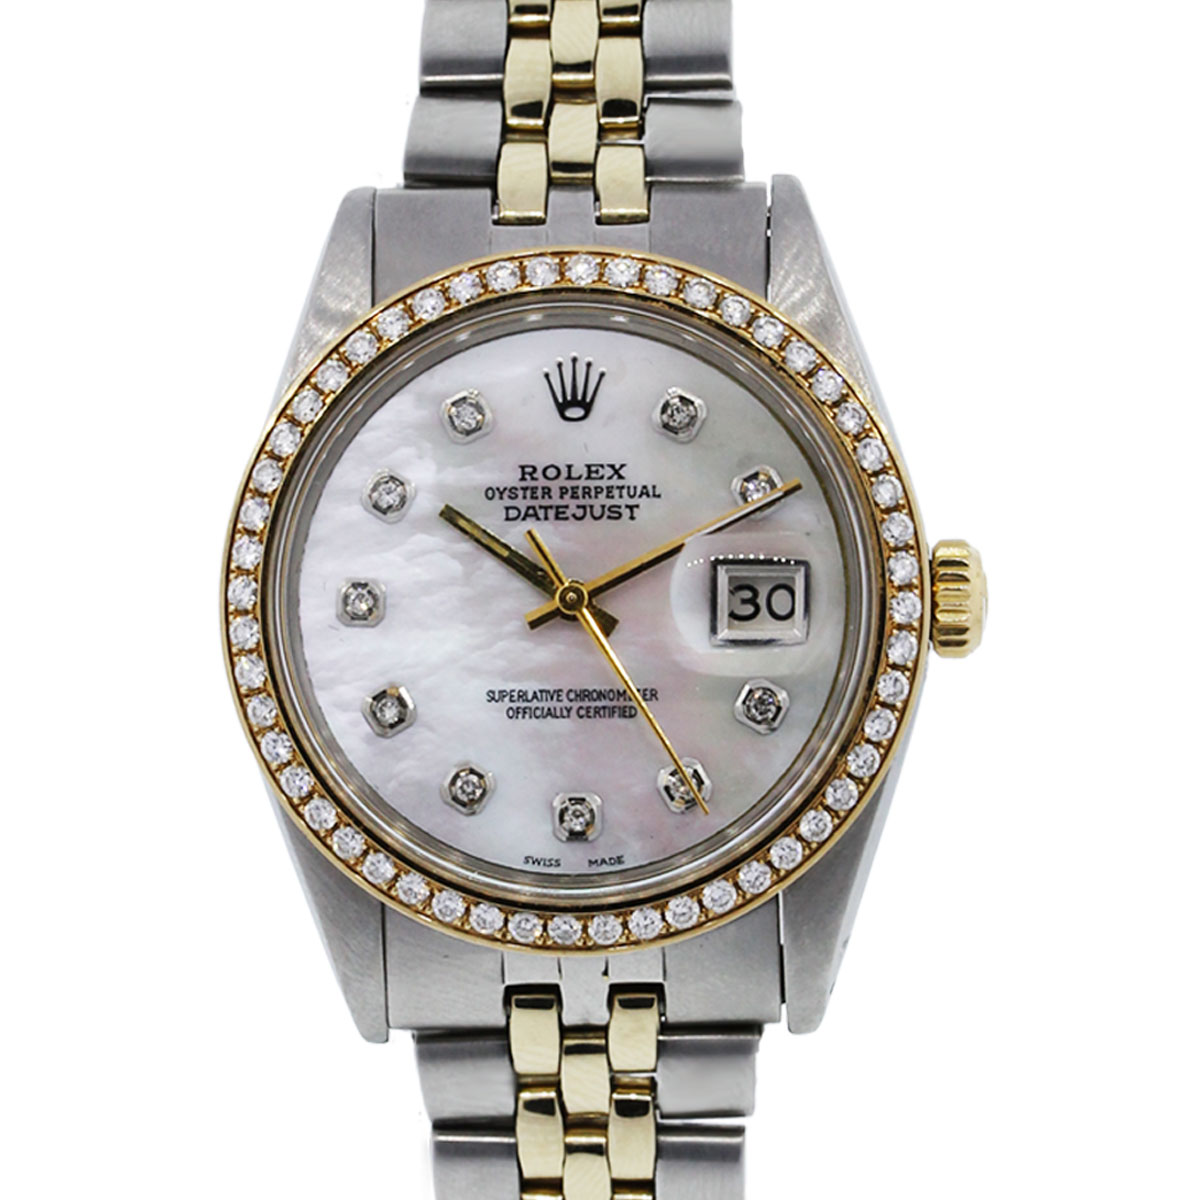 You are viewing this Rolex Datejust 16013 Two Tone Mother of Pearl Dial Diamond Bezel Watch!